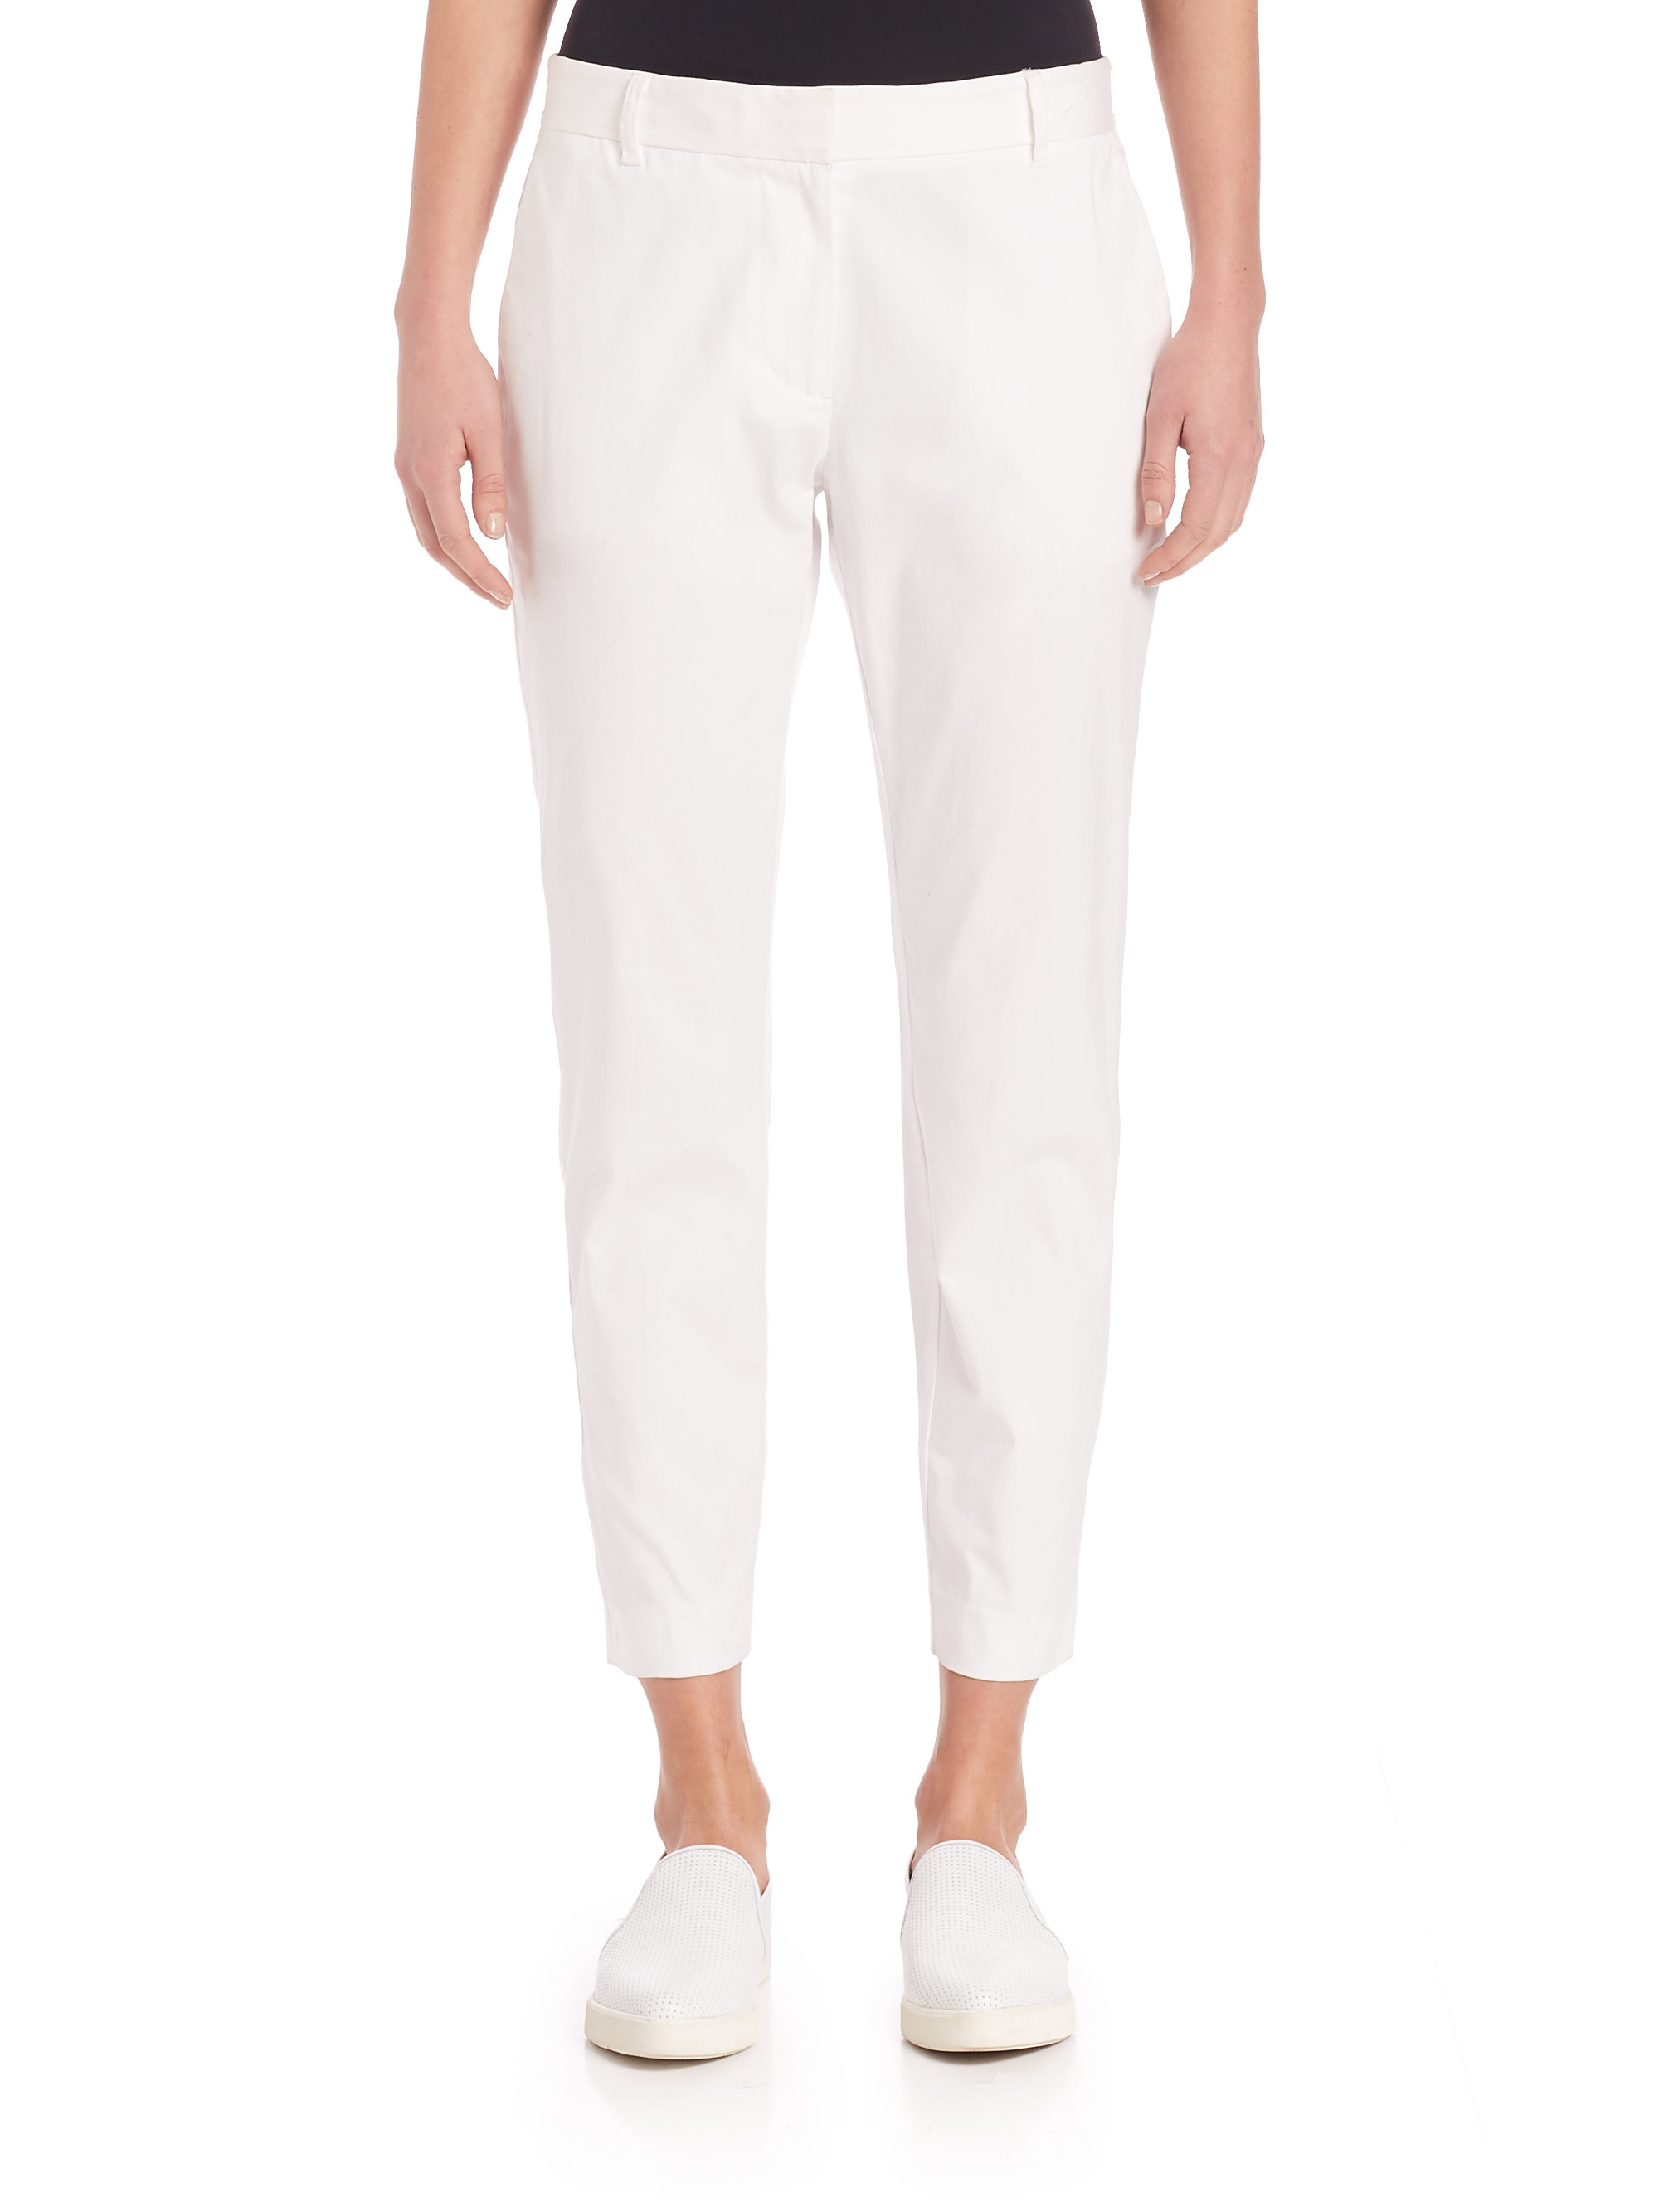 Dkny Solid Cropped Pants in White | Lyst